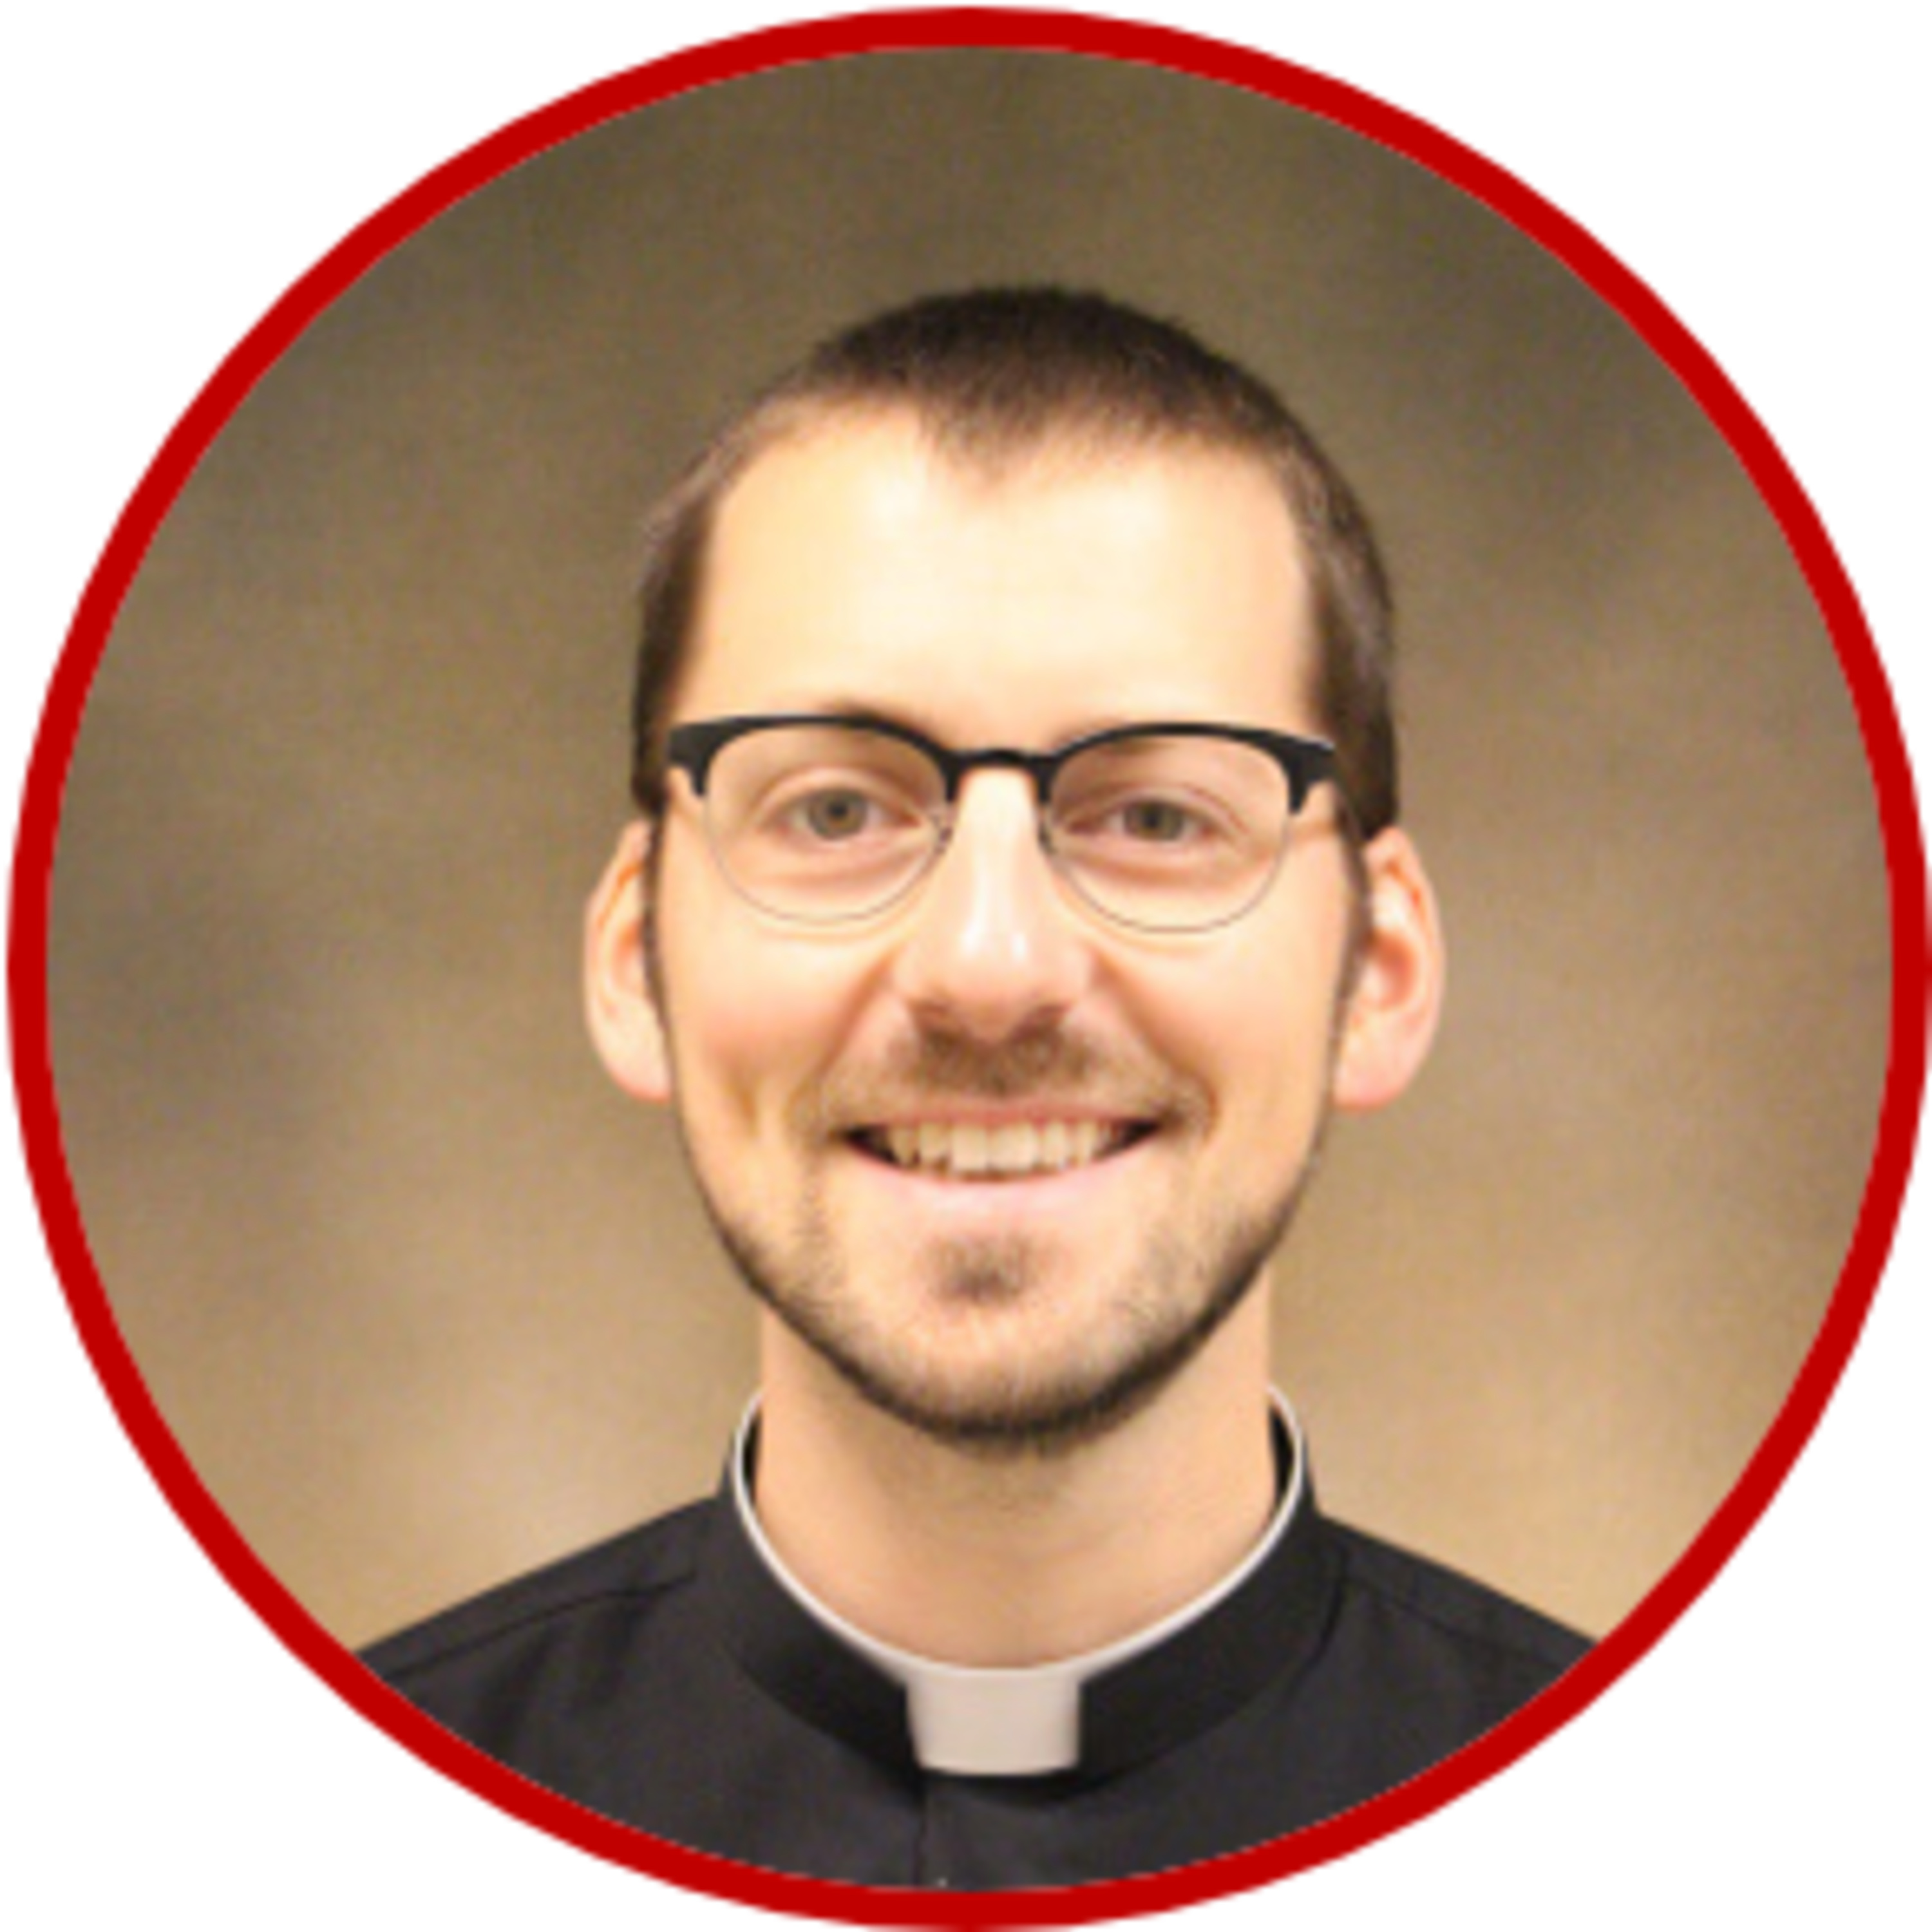 23rd Sunday in Ordinary Time: Fr. Christian DeCarlo